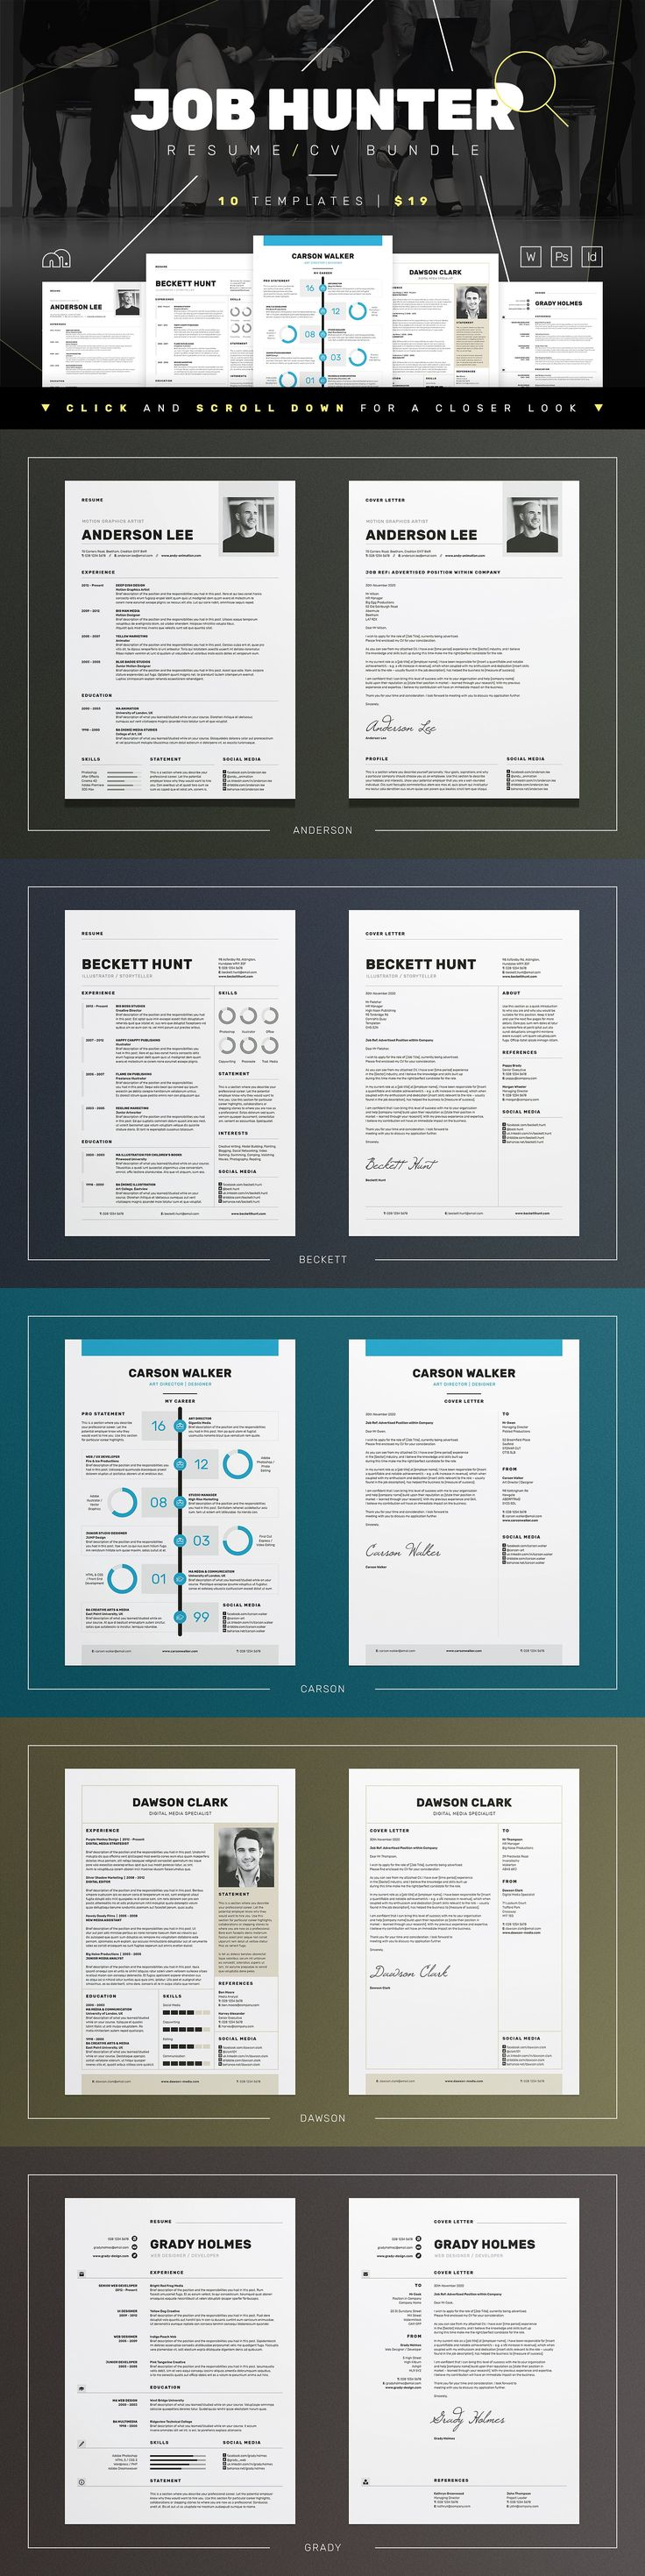 1000 Ideas About Job Application Cover Letter